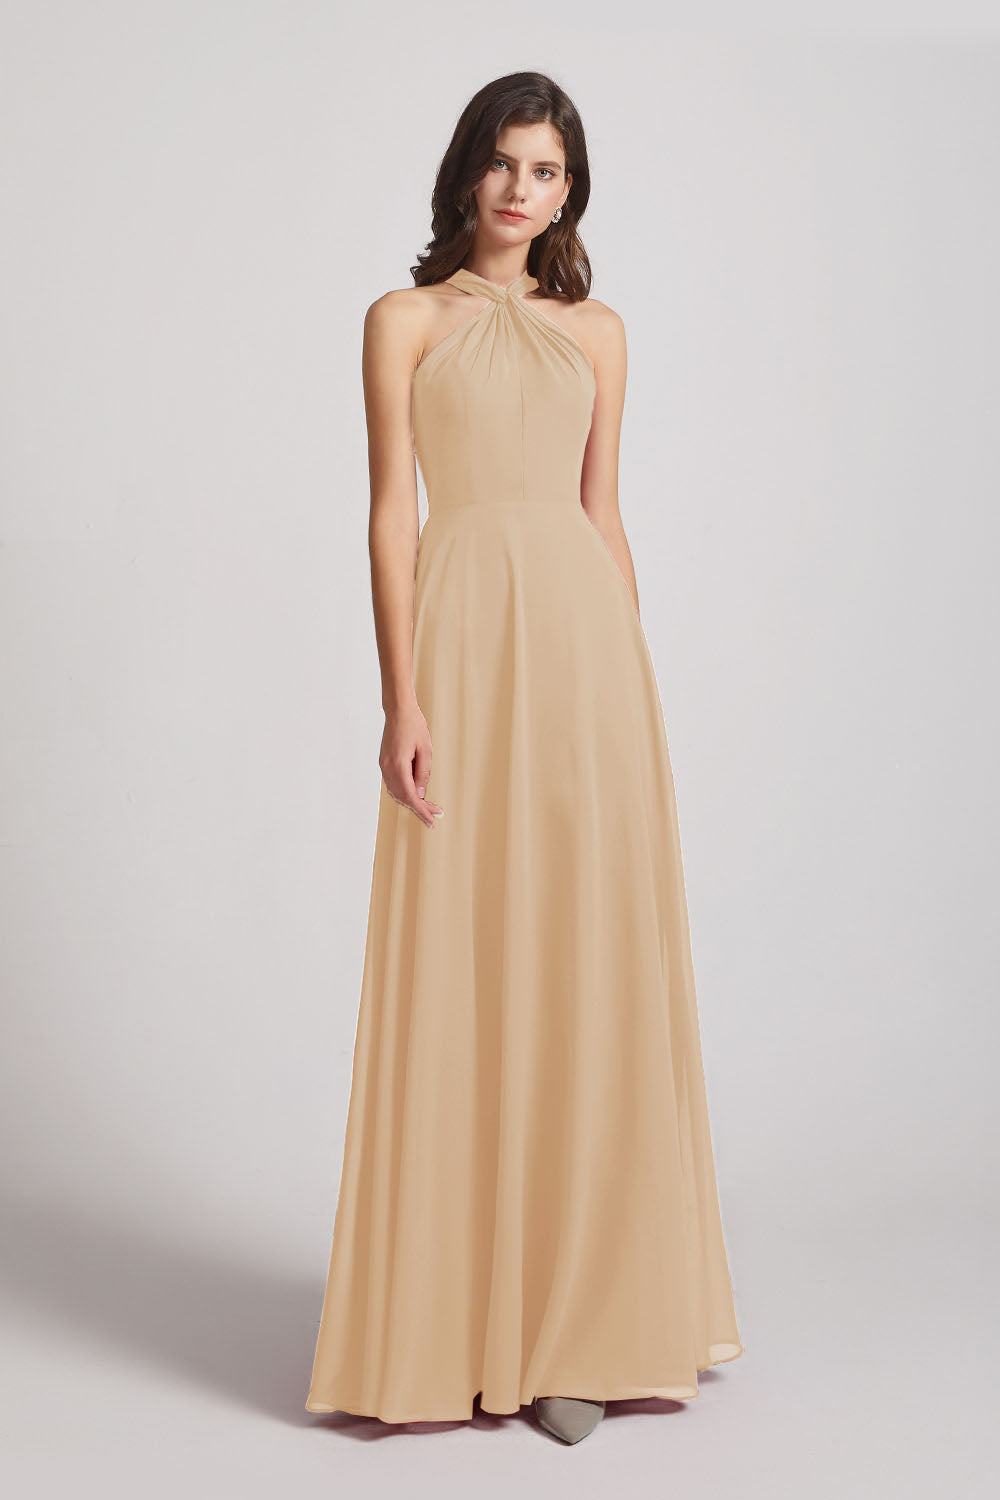 Alfa Bridal Champagne Floor Length Chiffon Bridesmaid Dresses with Criss Cross Neckline (AF0113)